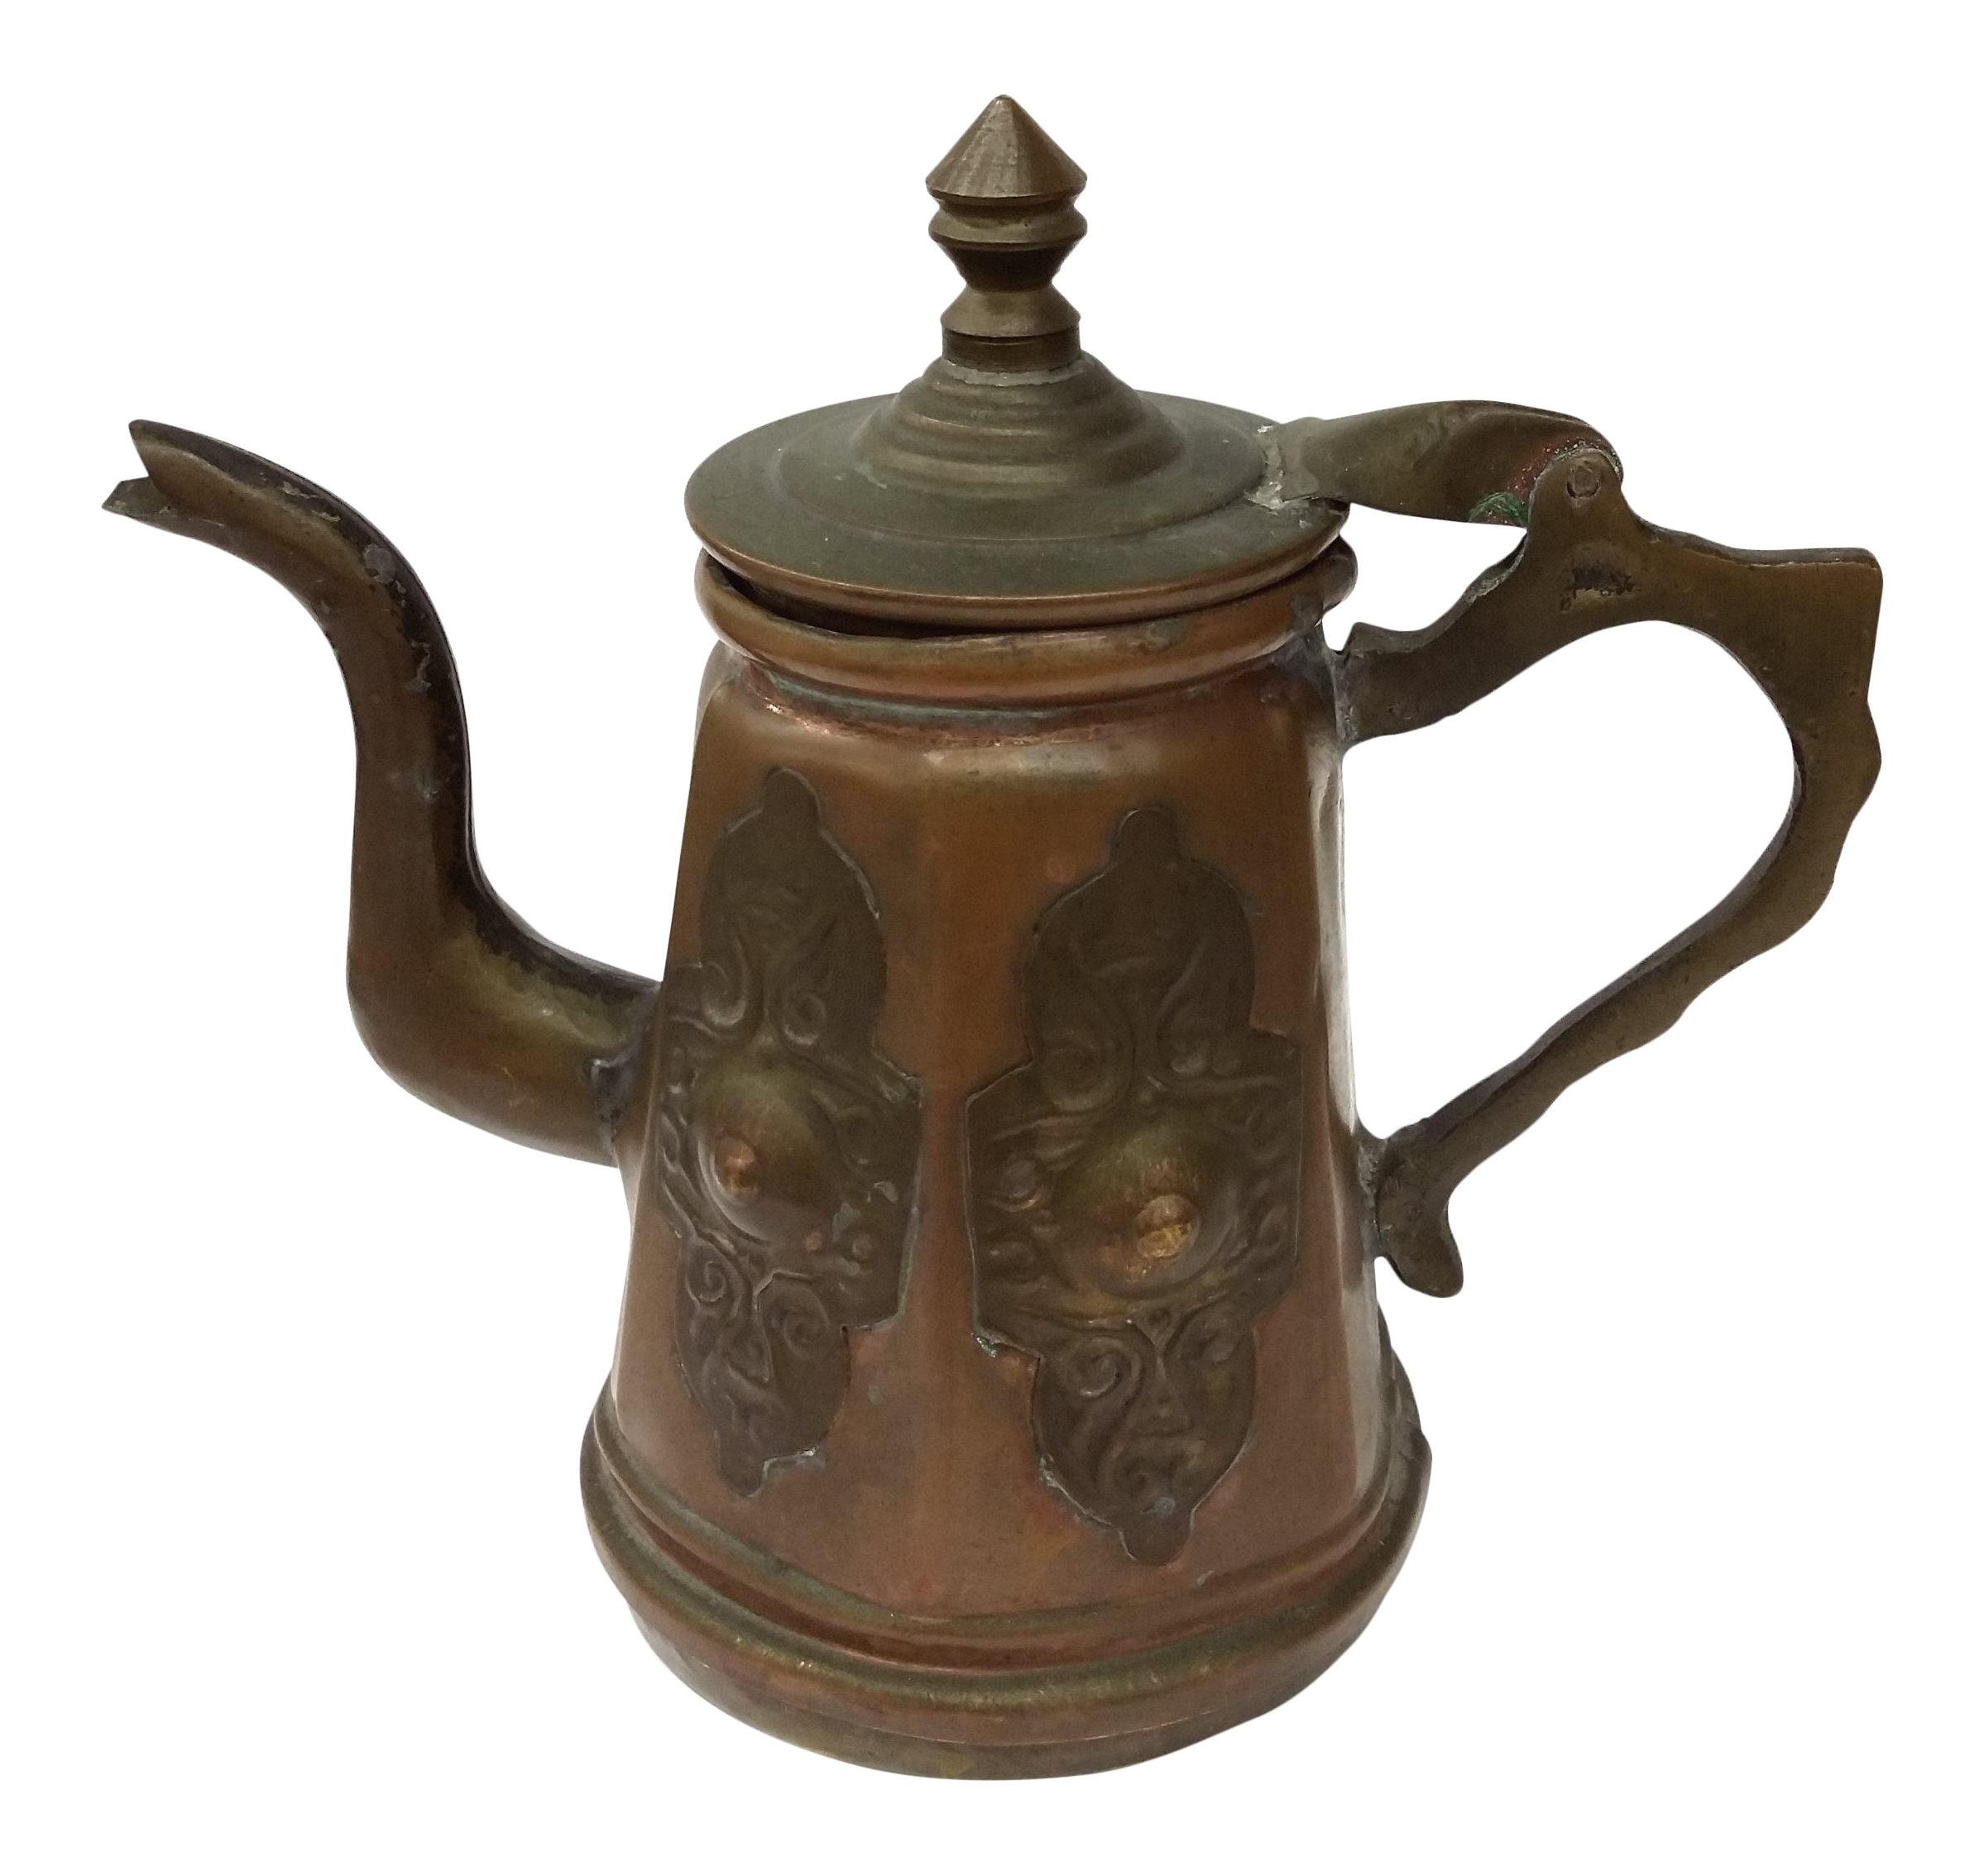 Antique Persian Copper Amp Brass Coffee Pot